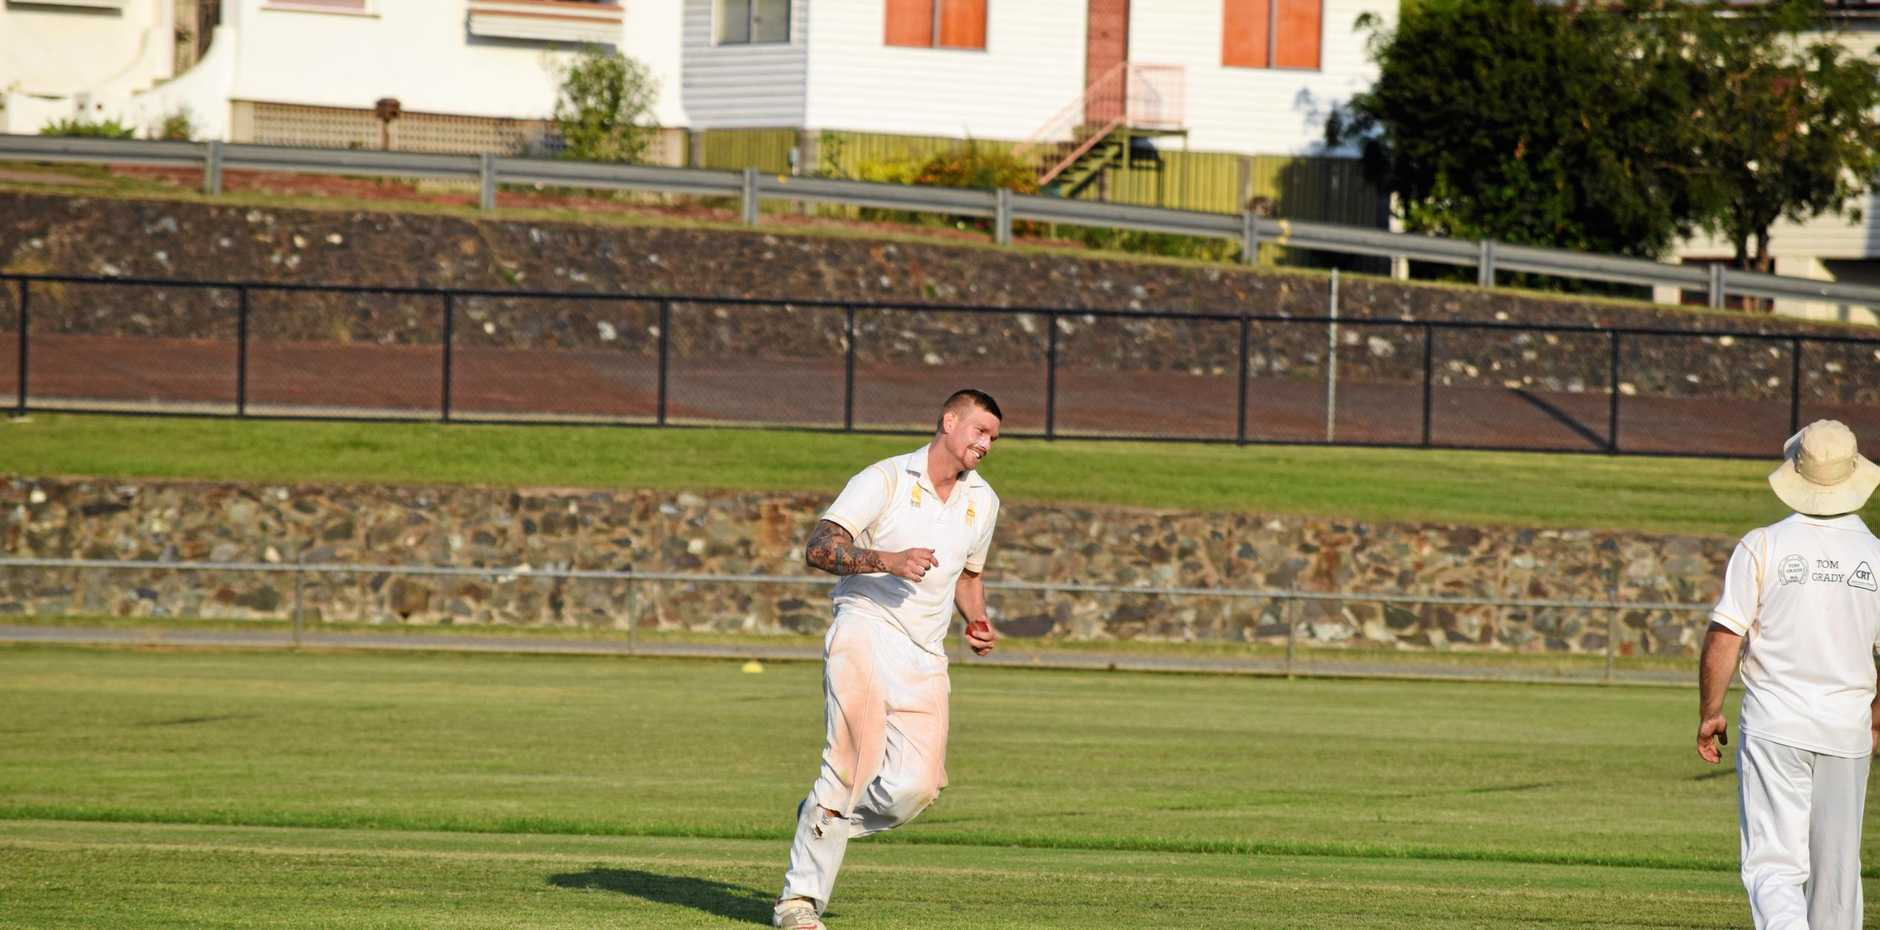 GAME CHANGER: Gympie Gold all-rounder Josh Brady's spell made the difference for his side as Gympie secured an outright win over the Yandina Pioneers.